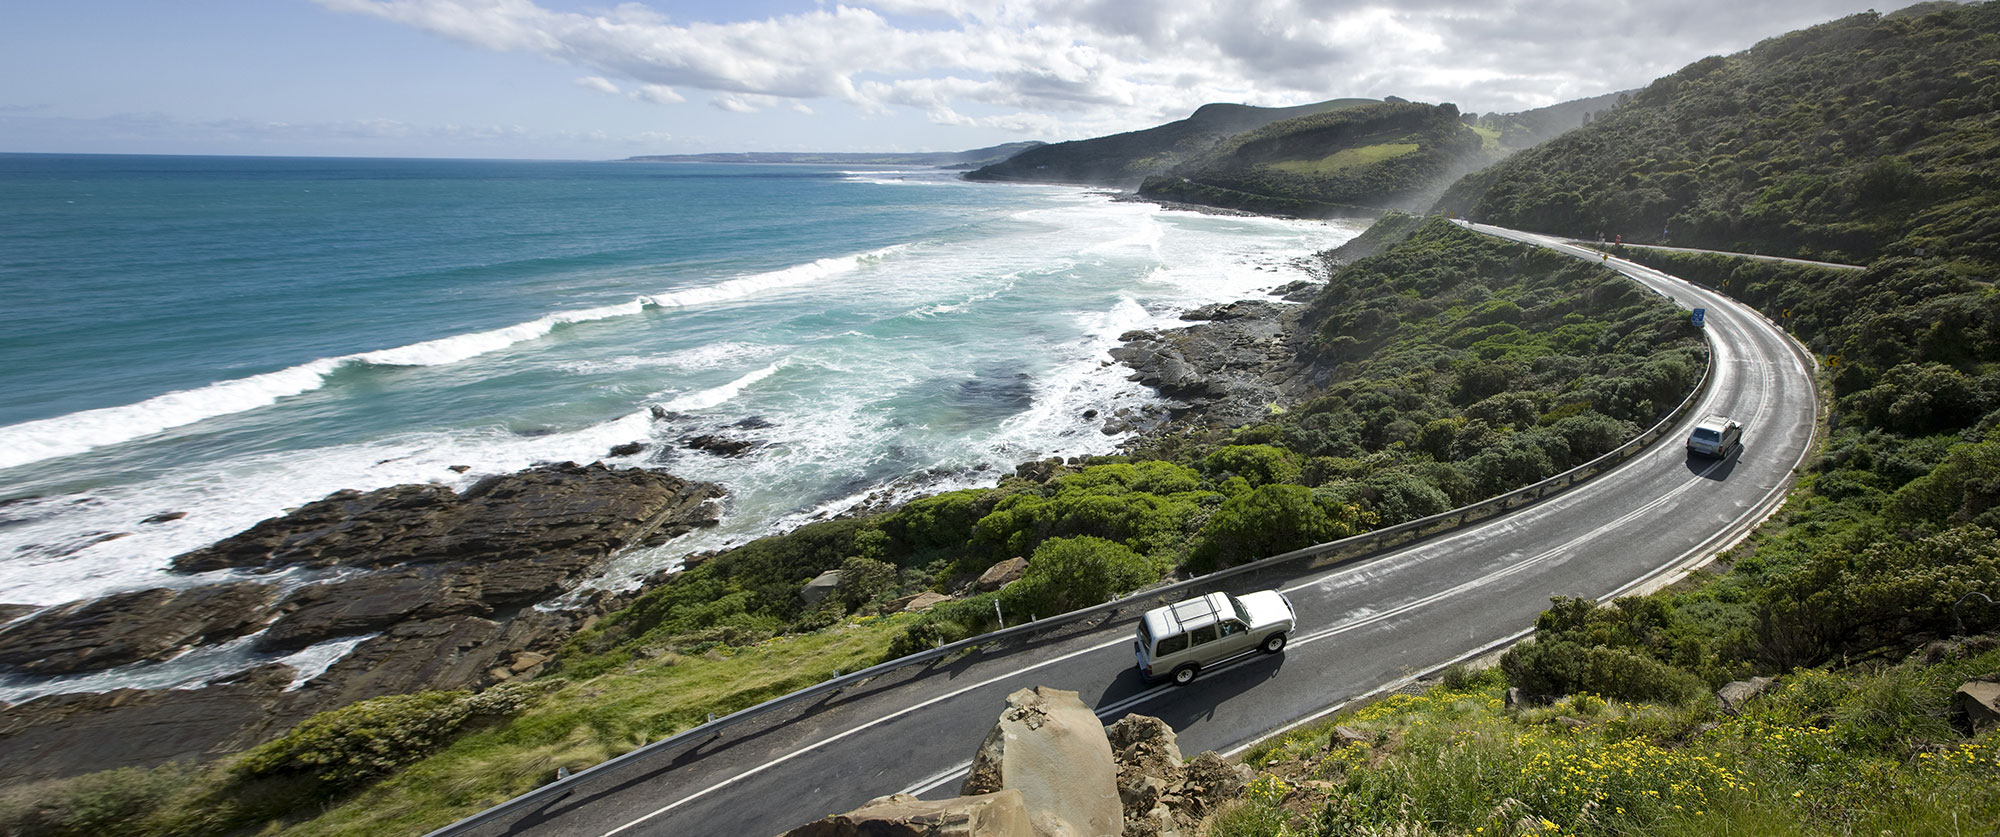 Australia Luxury Vacation Great Ocean Road